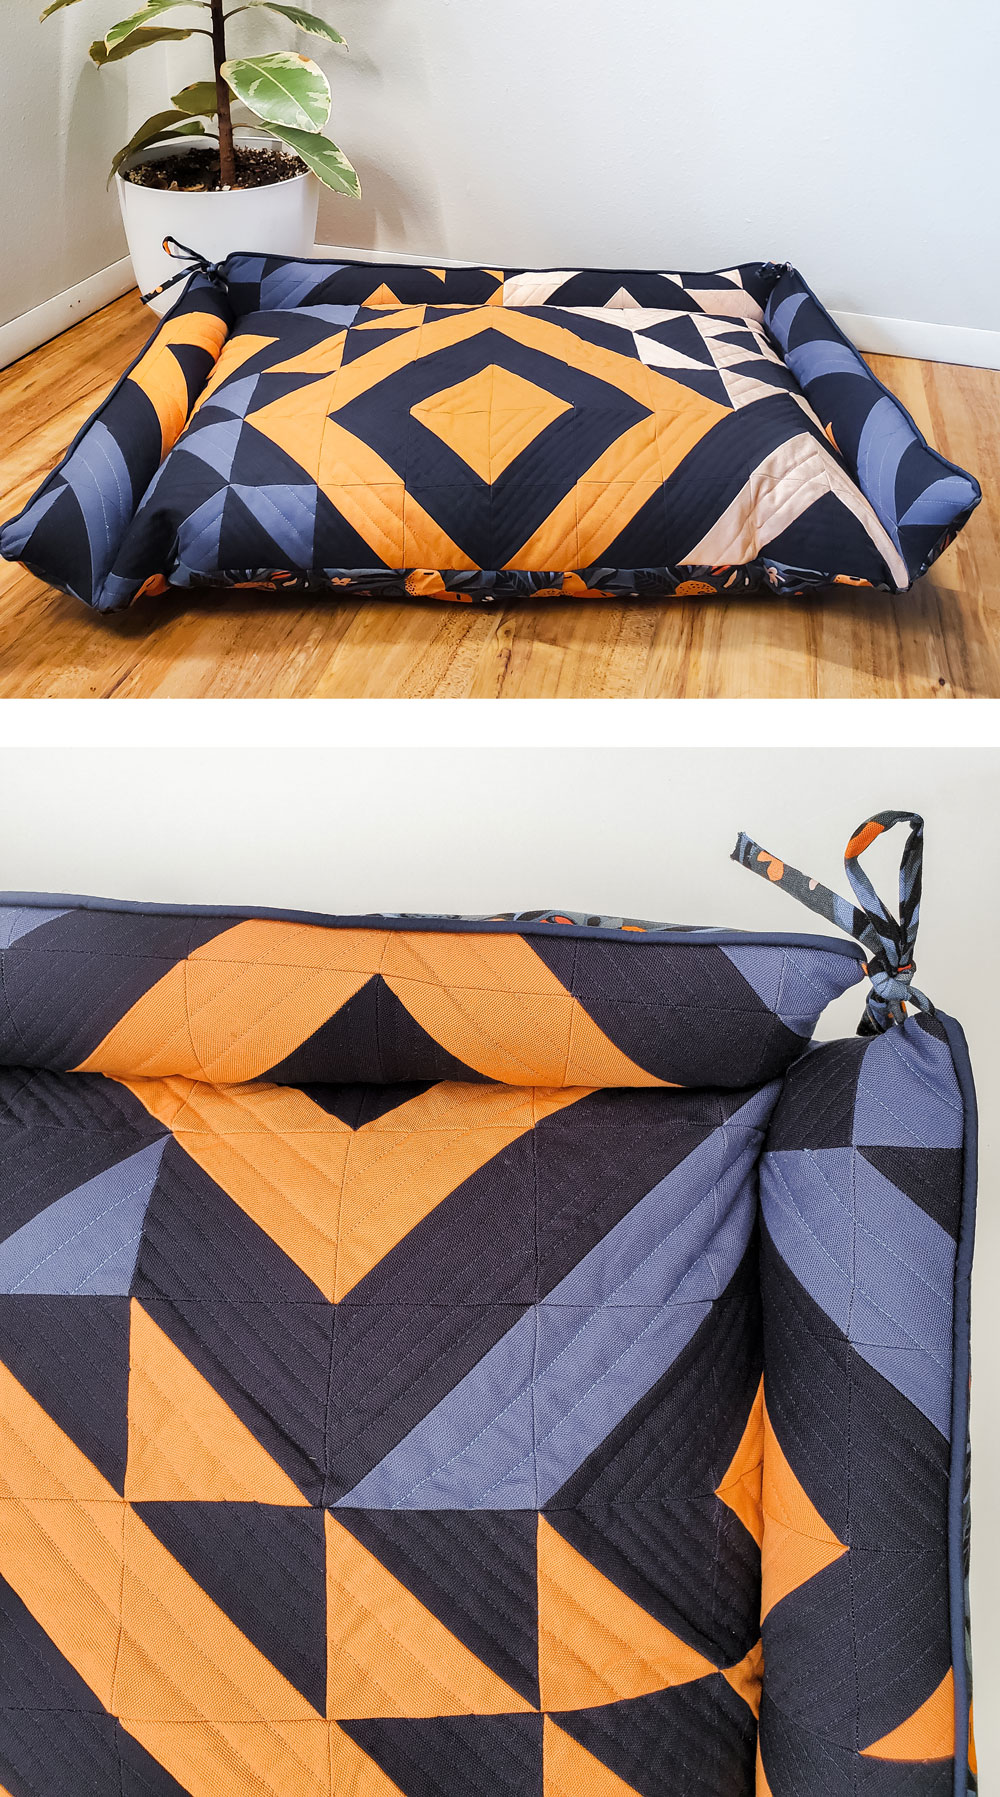 Make a Triangle Jitters Quilted Dog bed with this free tutorial! Step by step instructions for this pe-approved sewing DIY! suzyquilts.com #dogbeddiy #sewingtutorial